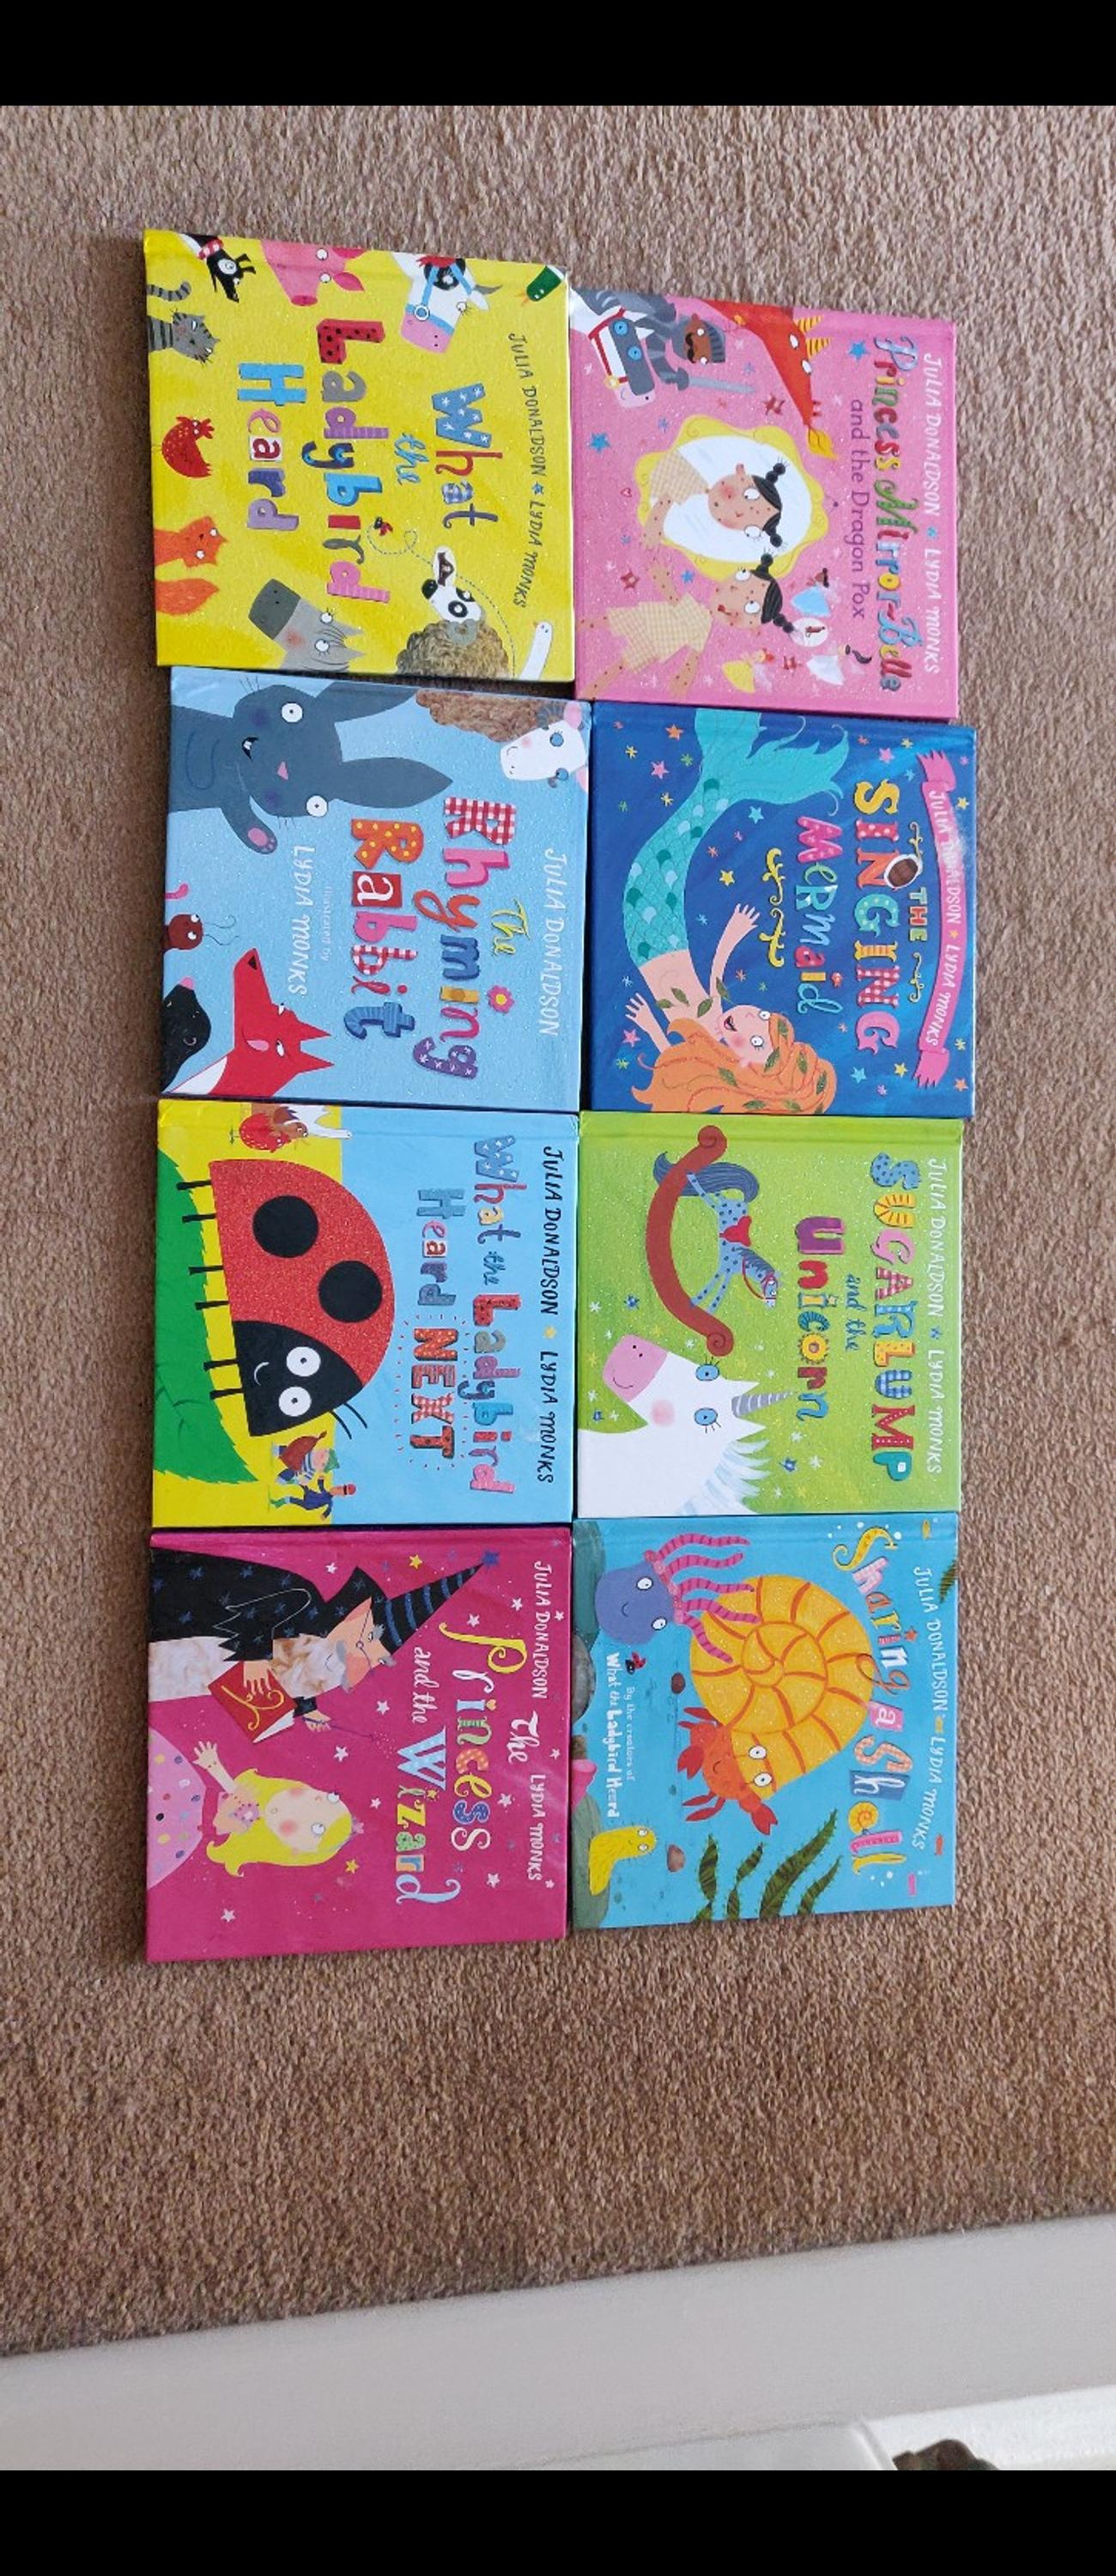 A collection of 8 books, with a bed time book case. hard bound. As good as New. Will be posted using Royal mail 2nd class standard delivery. sold as seen.